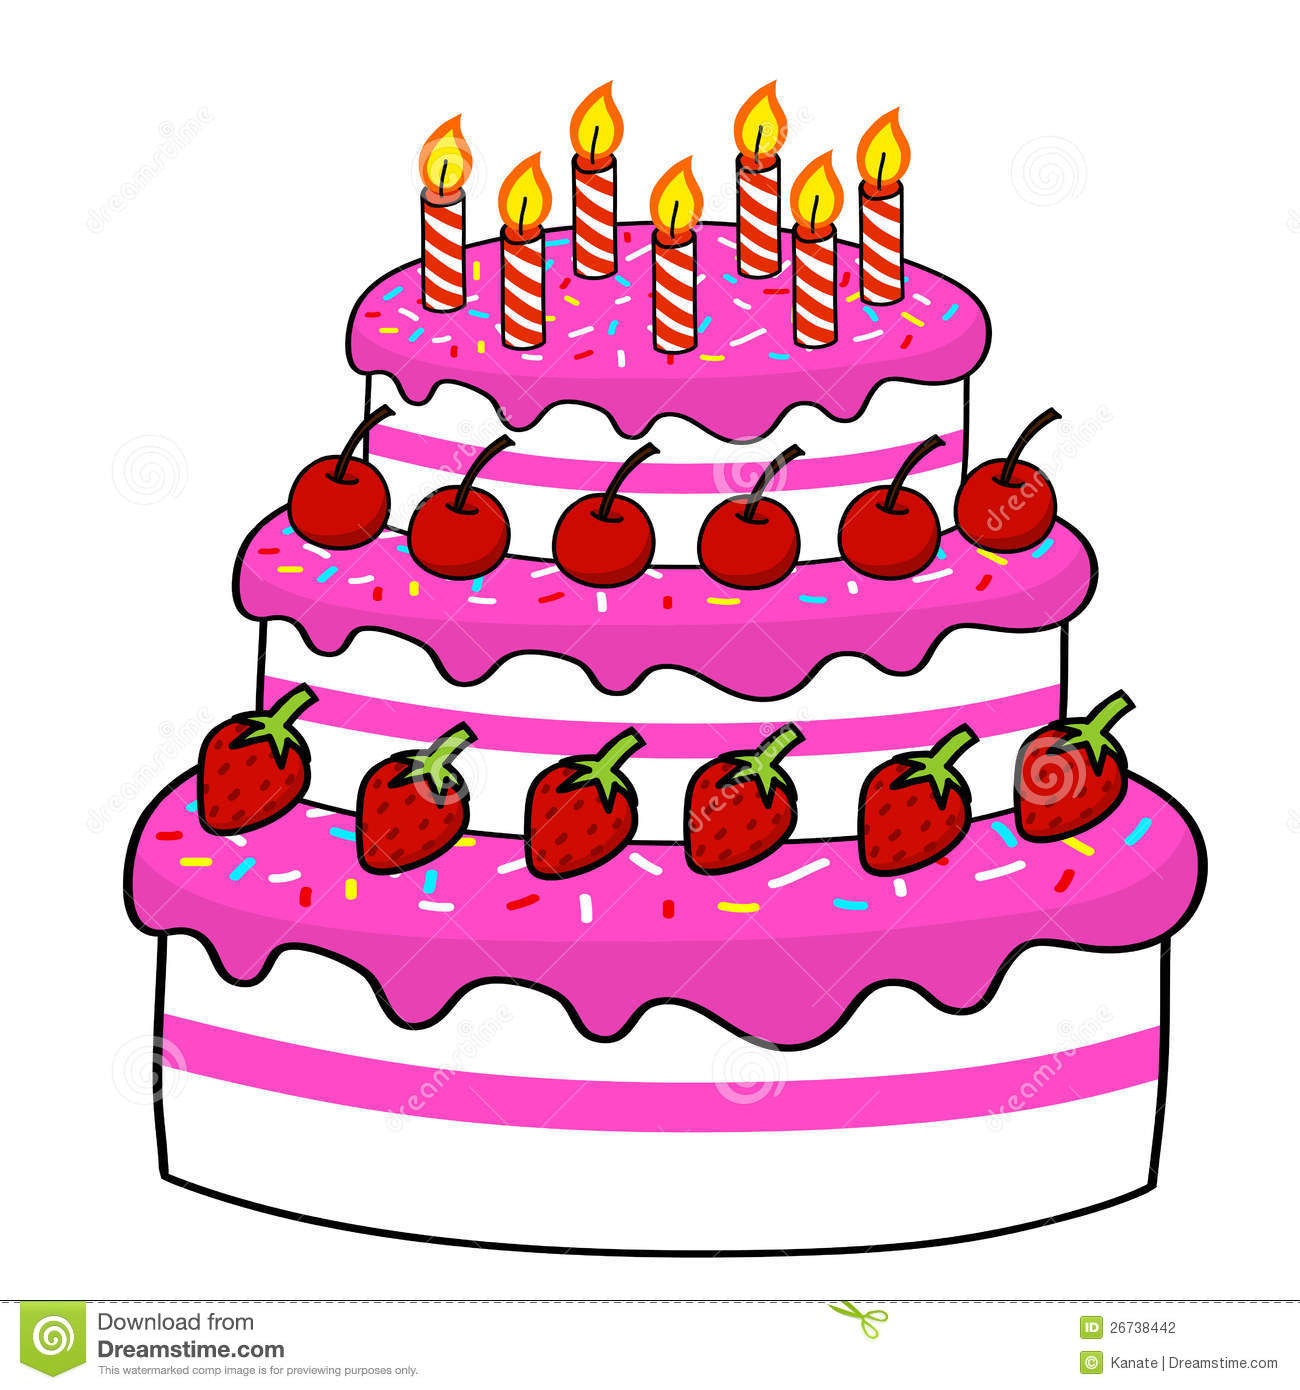 Best ideas about Cartoon Birthday Cake . Save or Pin Birthday Cake Drawing Cartoon at GetDrawings Now.